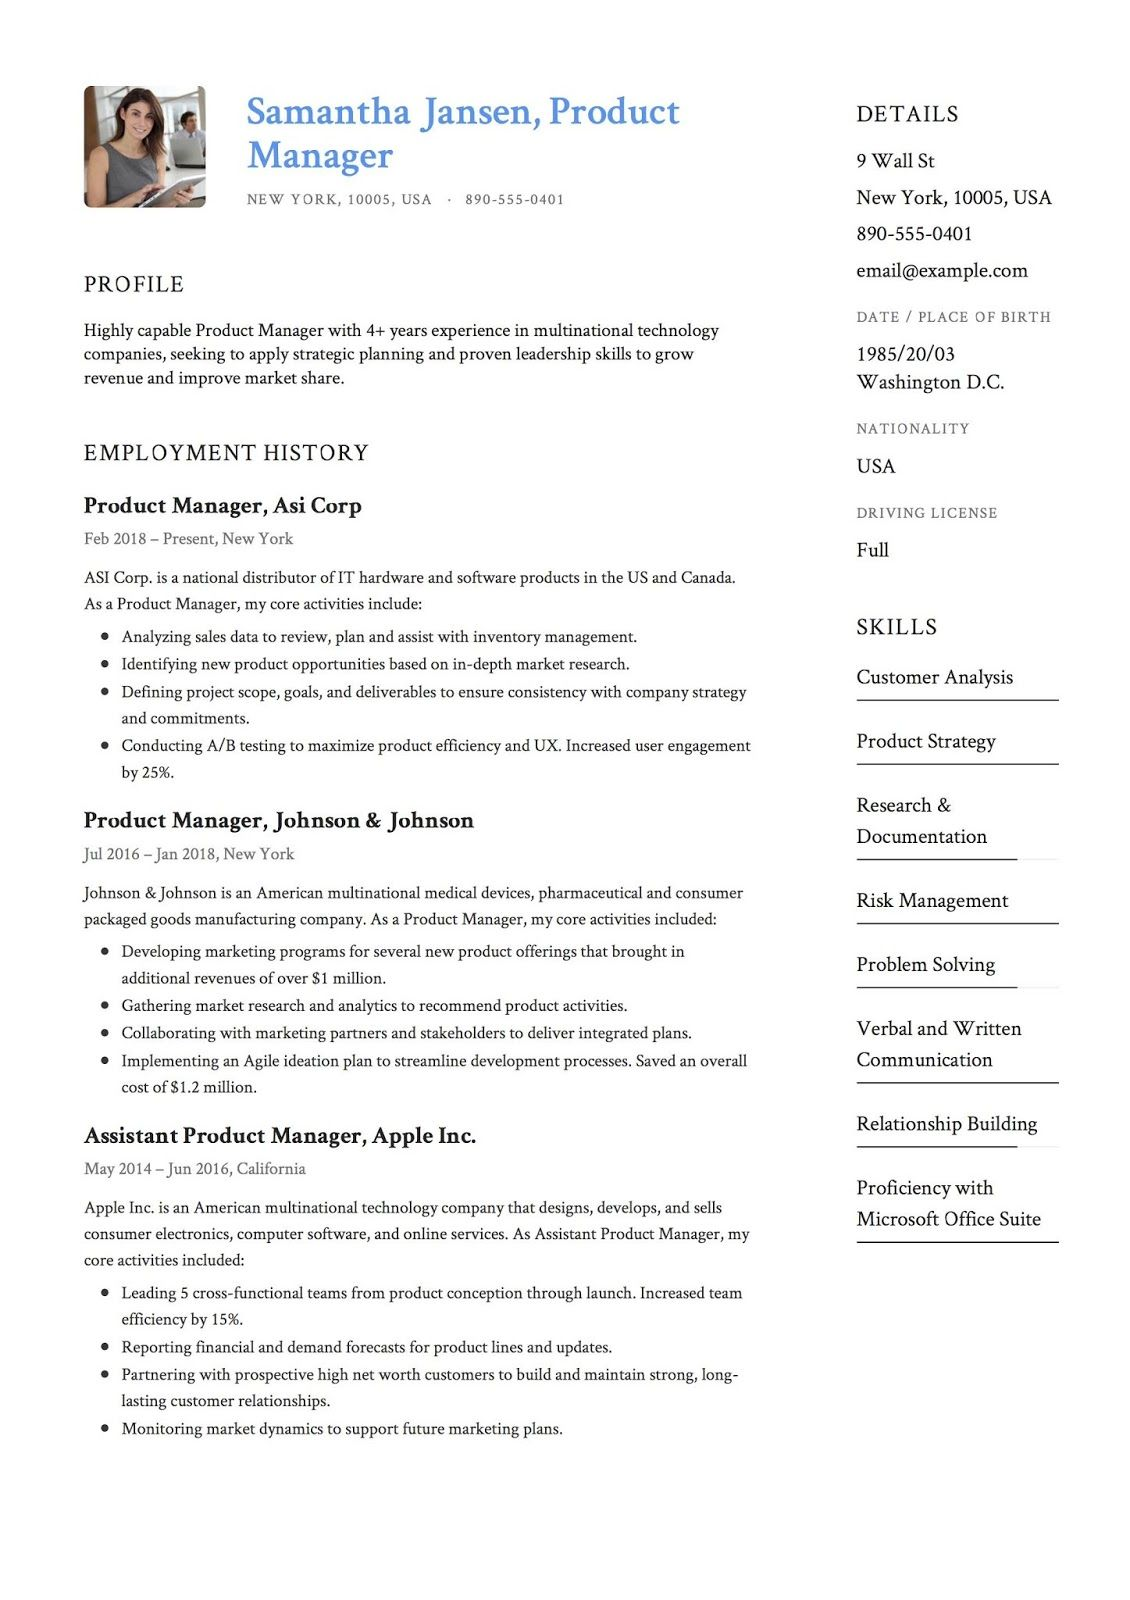 Product Manager Resume Sample, product manager resume